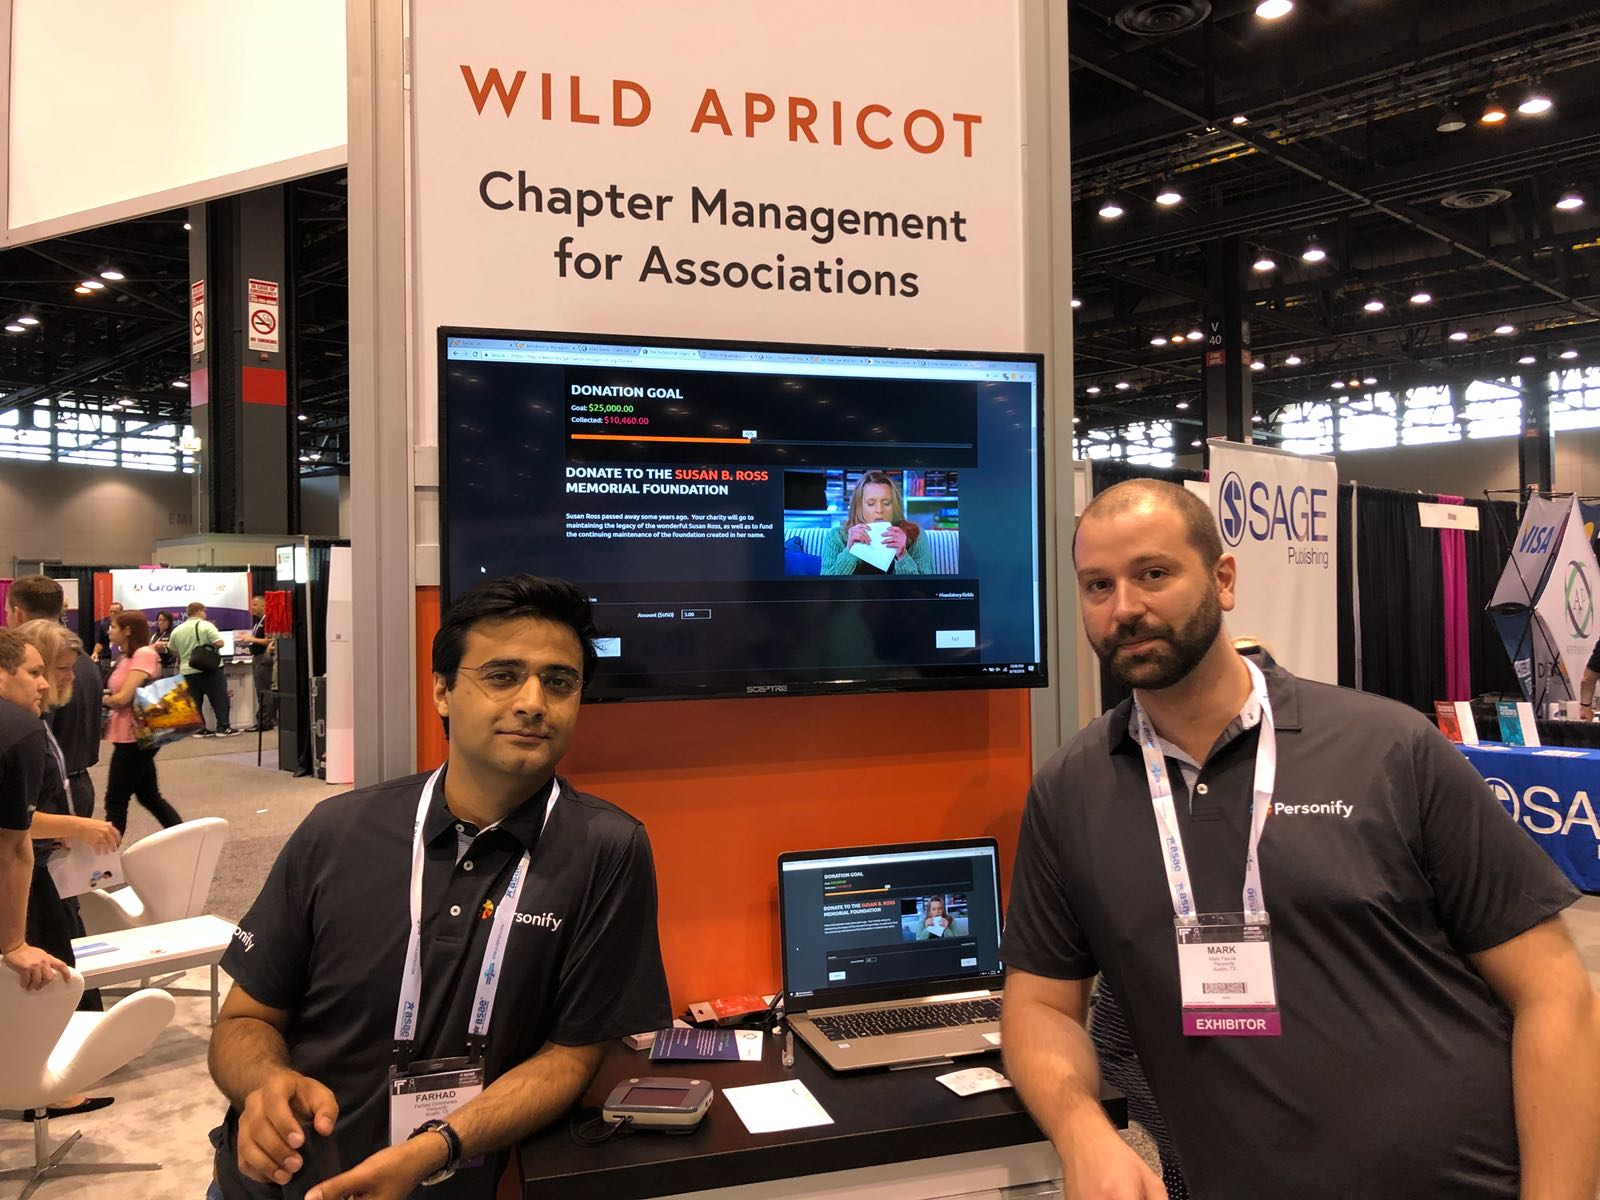 Farhad and Mark at the Wild Apricot stand